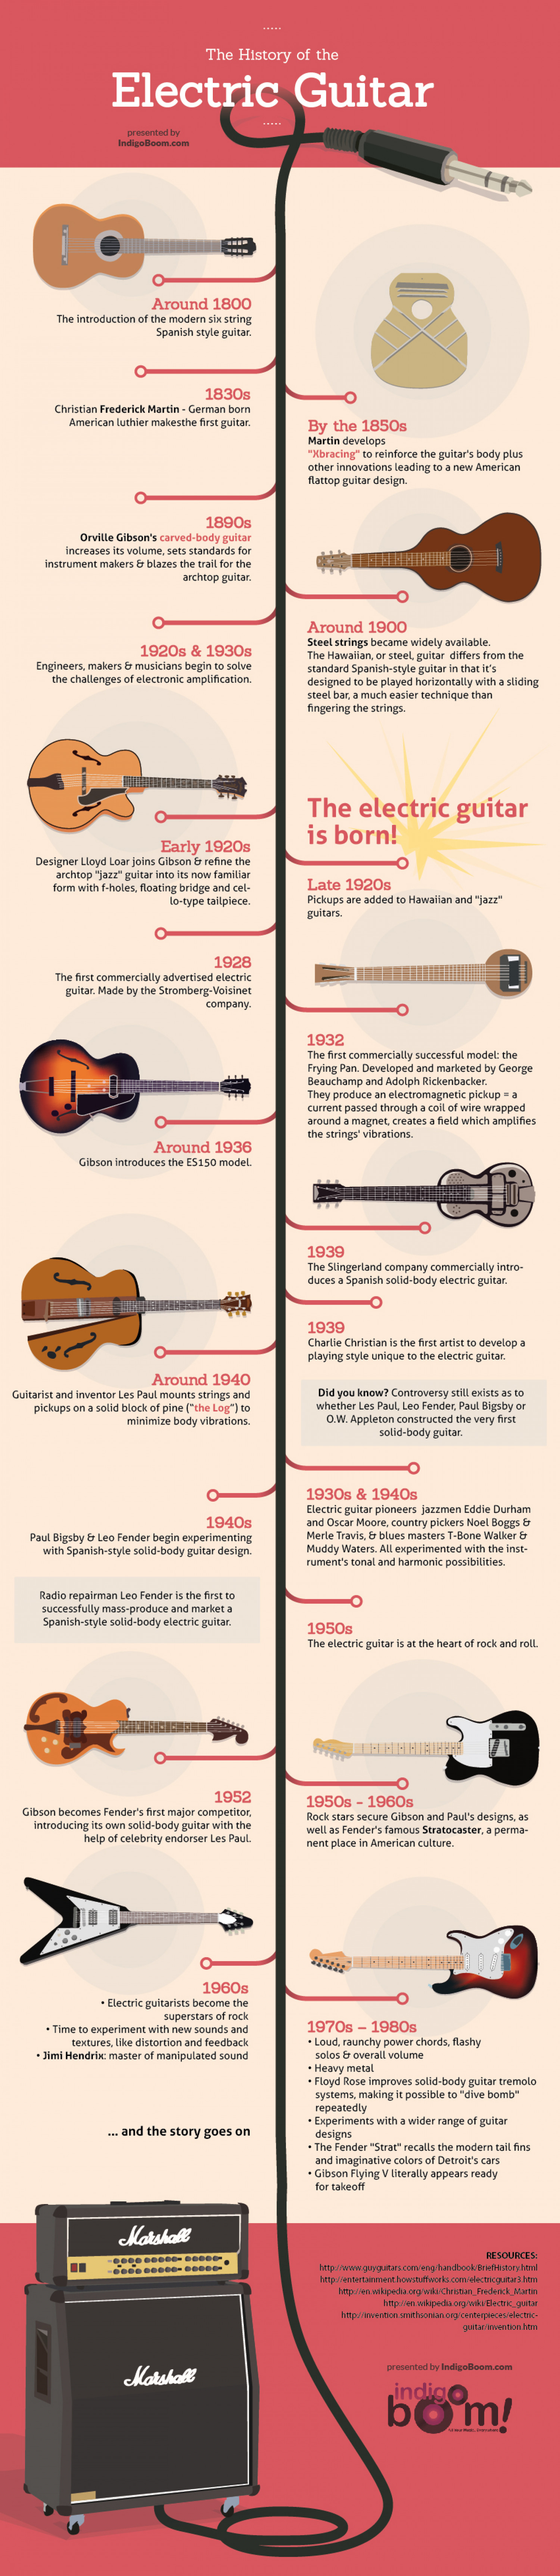 The History Of The Electric Guitar Visual